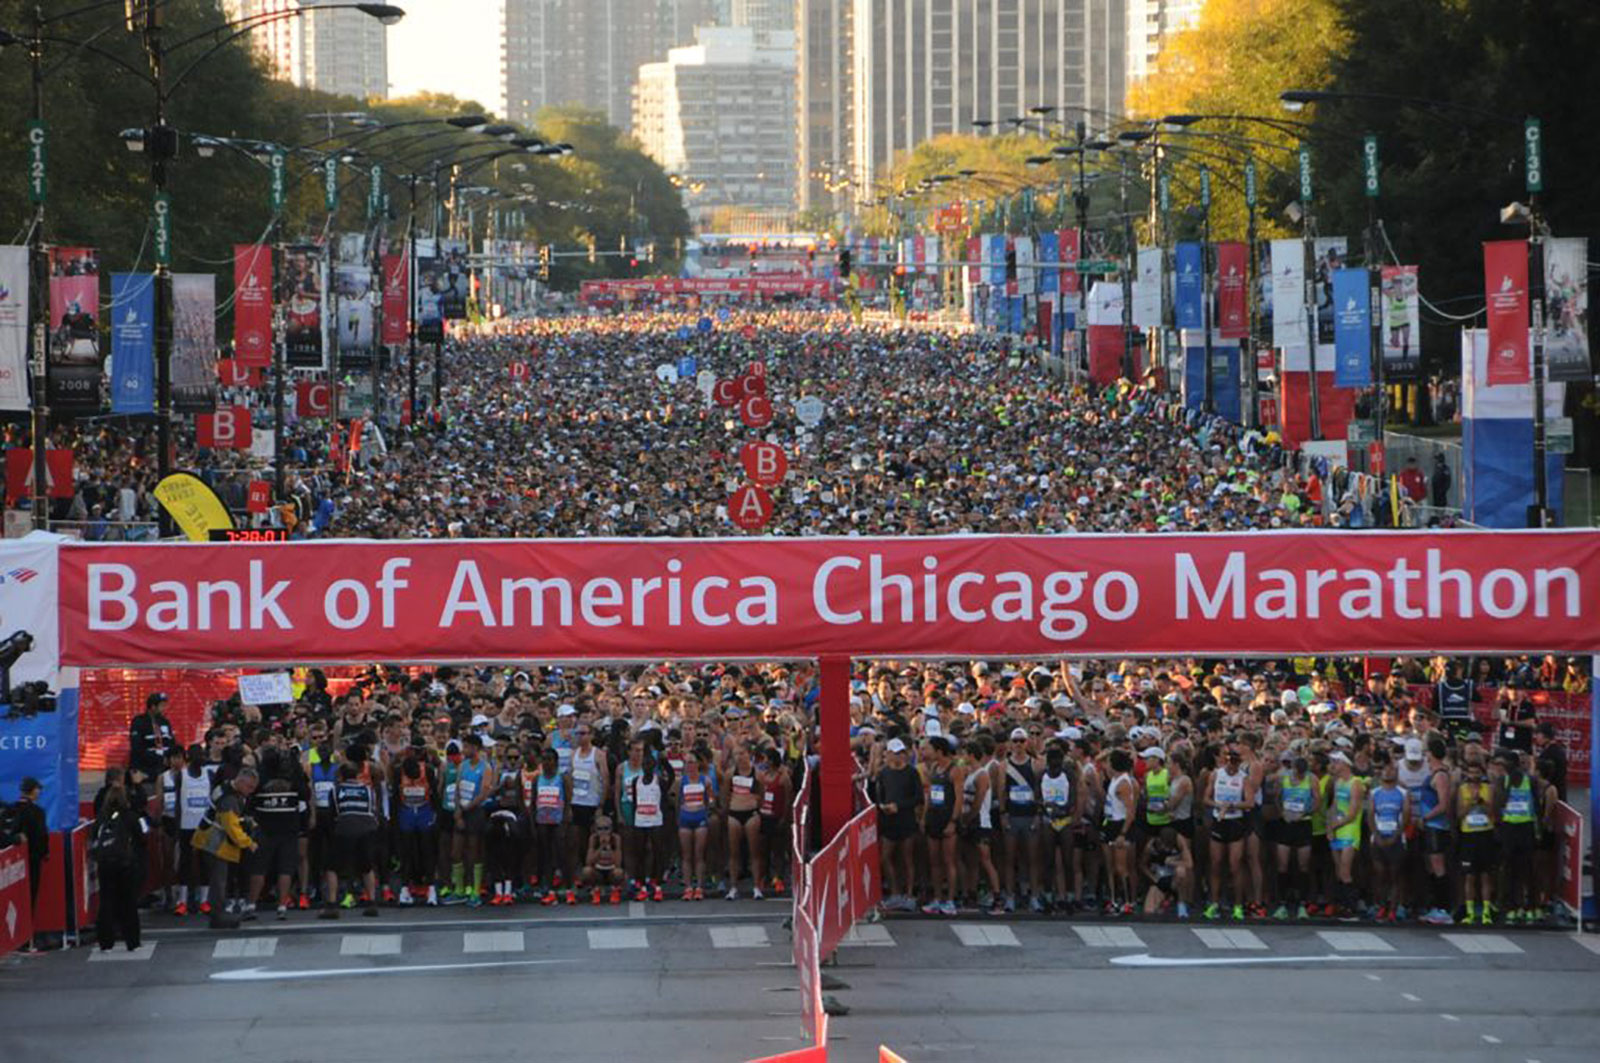 chicago marathon course strategy - how to run the chicago